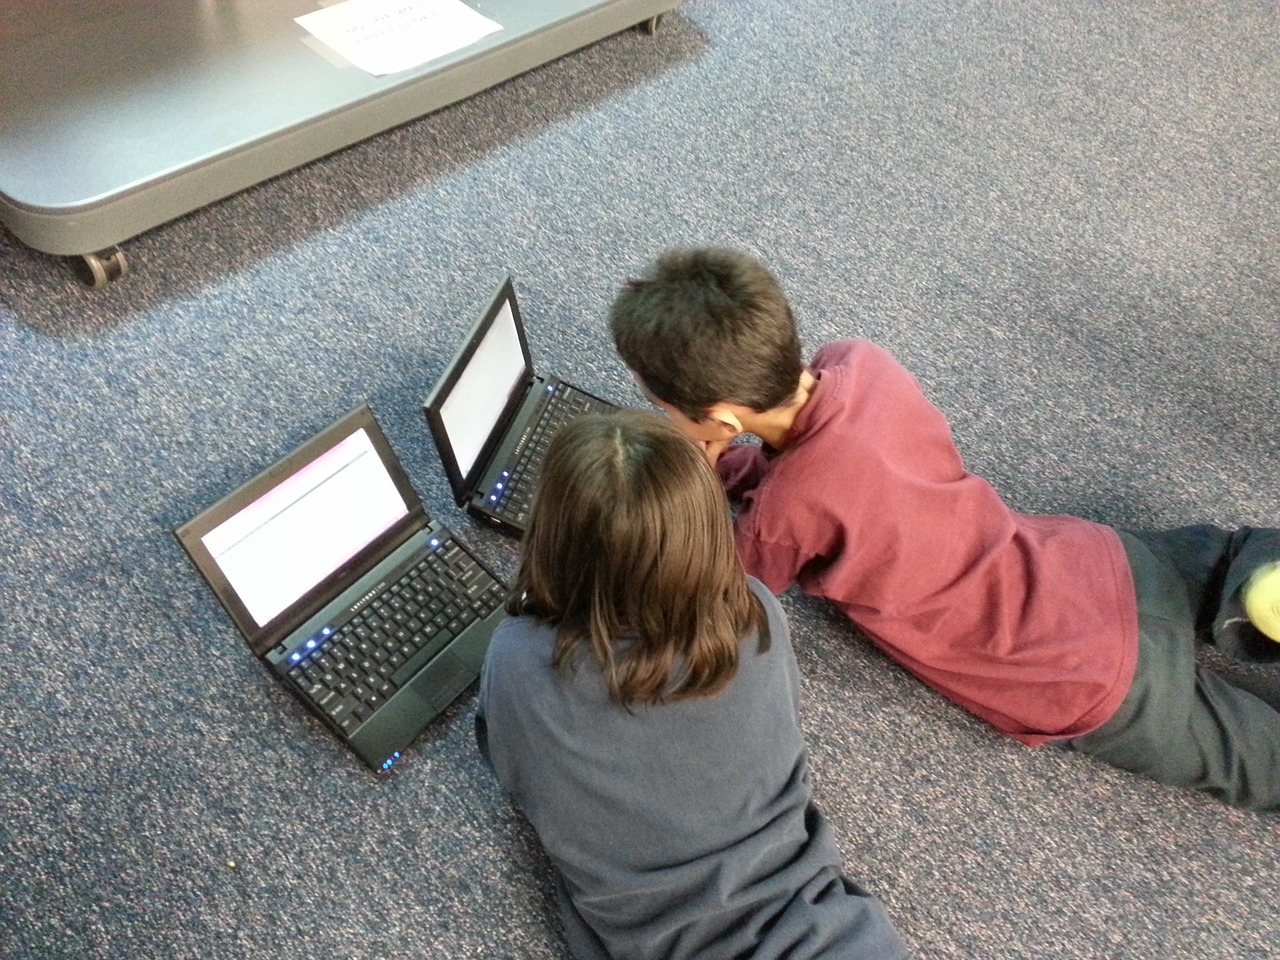 Children with a laptop – Often they don't recognize advertising